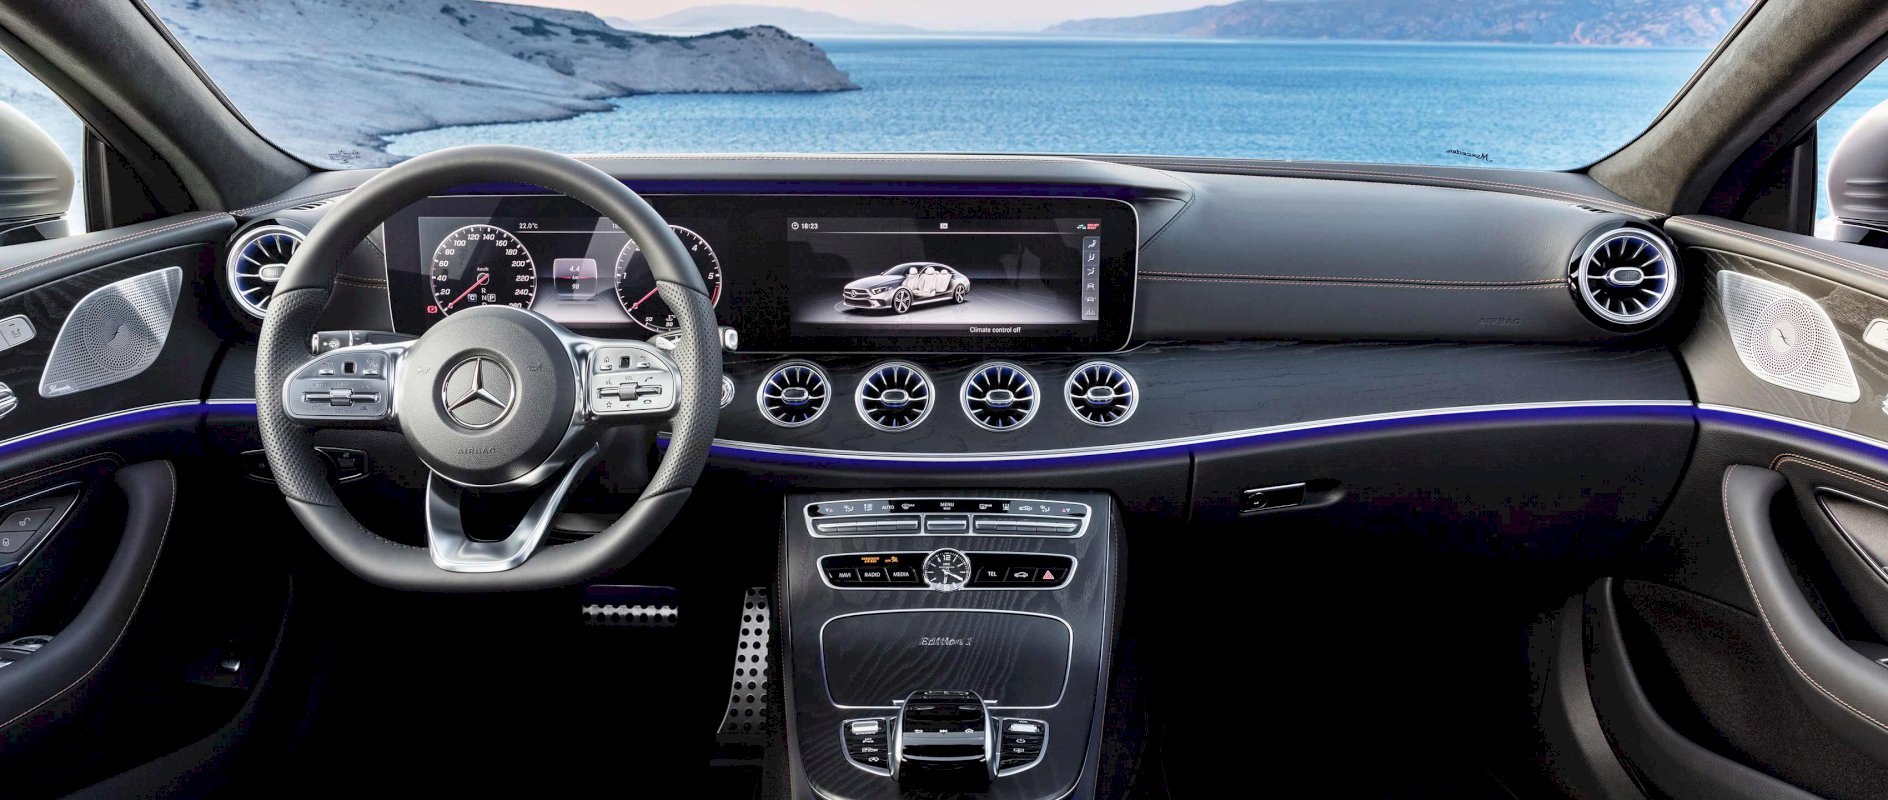 0 offres de mercedes mercedes classe cls ii shooting brake au meilleur prix du march. Black Bedroom Furniture Sets. Home Design Ideas